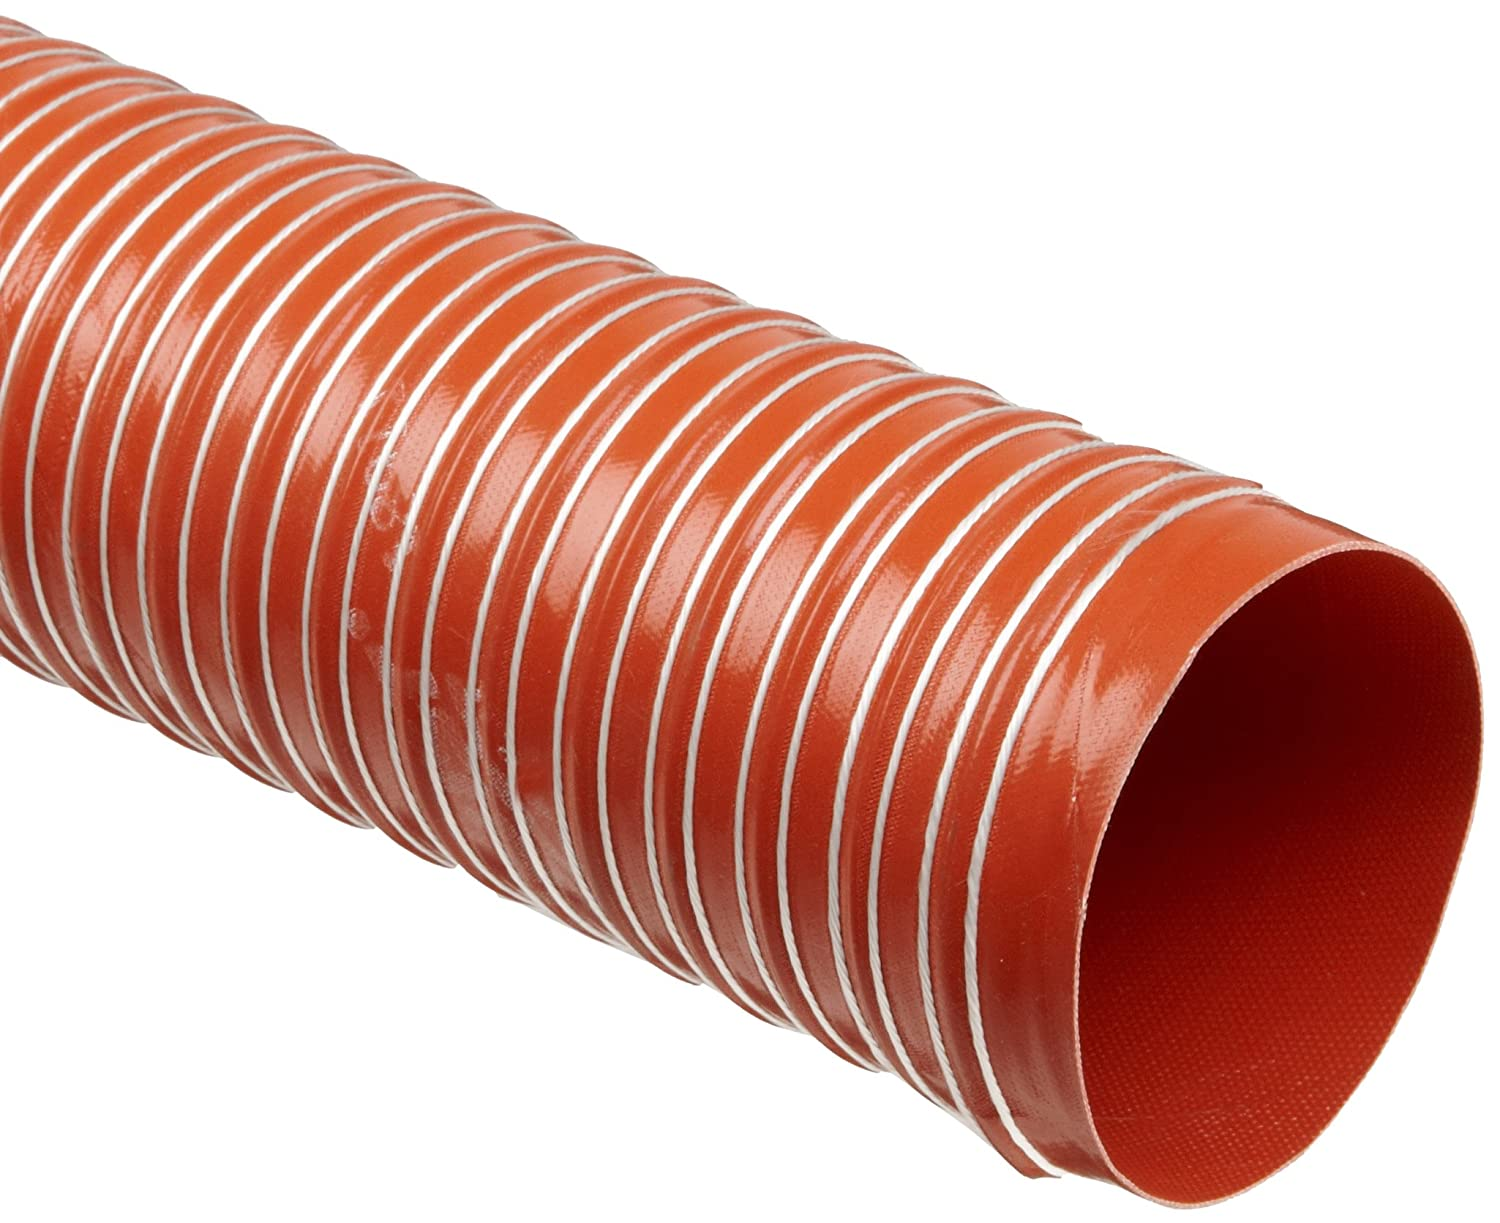 Heat-Flex GS Fiberglass Duct Hose, Iron Oxide Red, For Use With Air, Fume FLECW